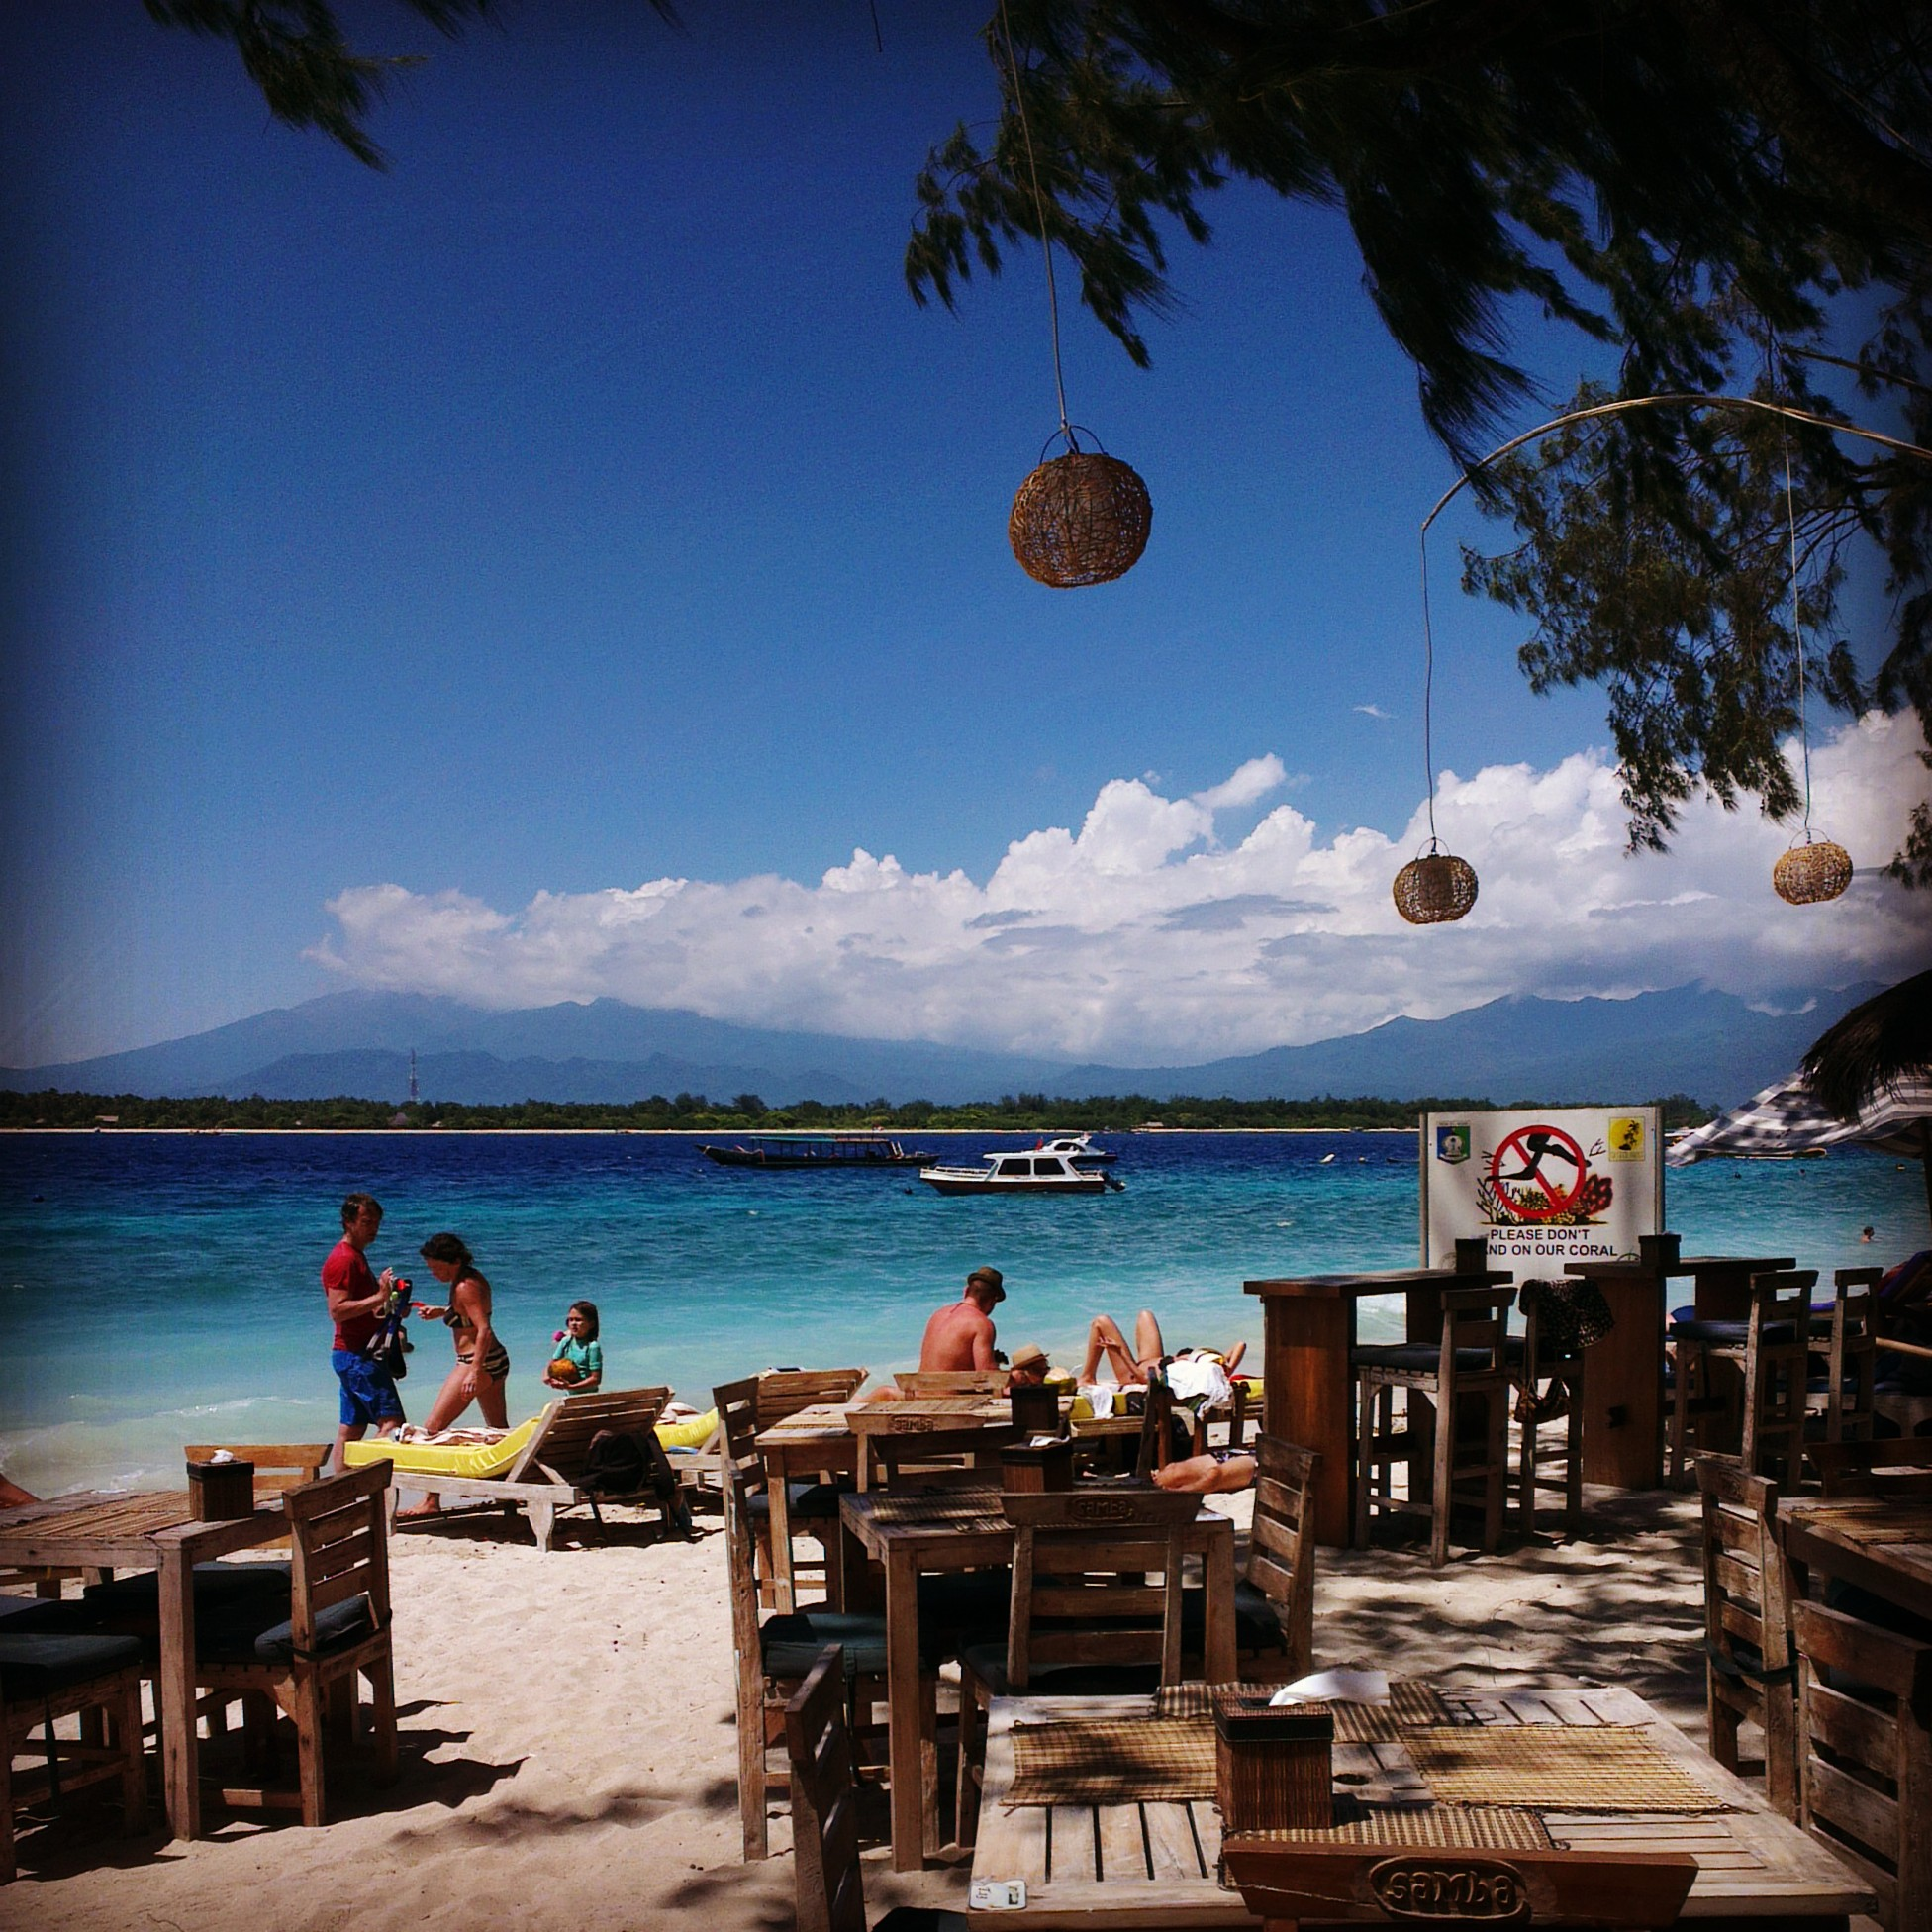 Lombok, Nusa Tenggara – Rediscovering The Edge Of Indonesia's Forgotten Islands